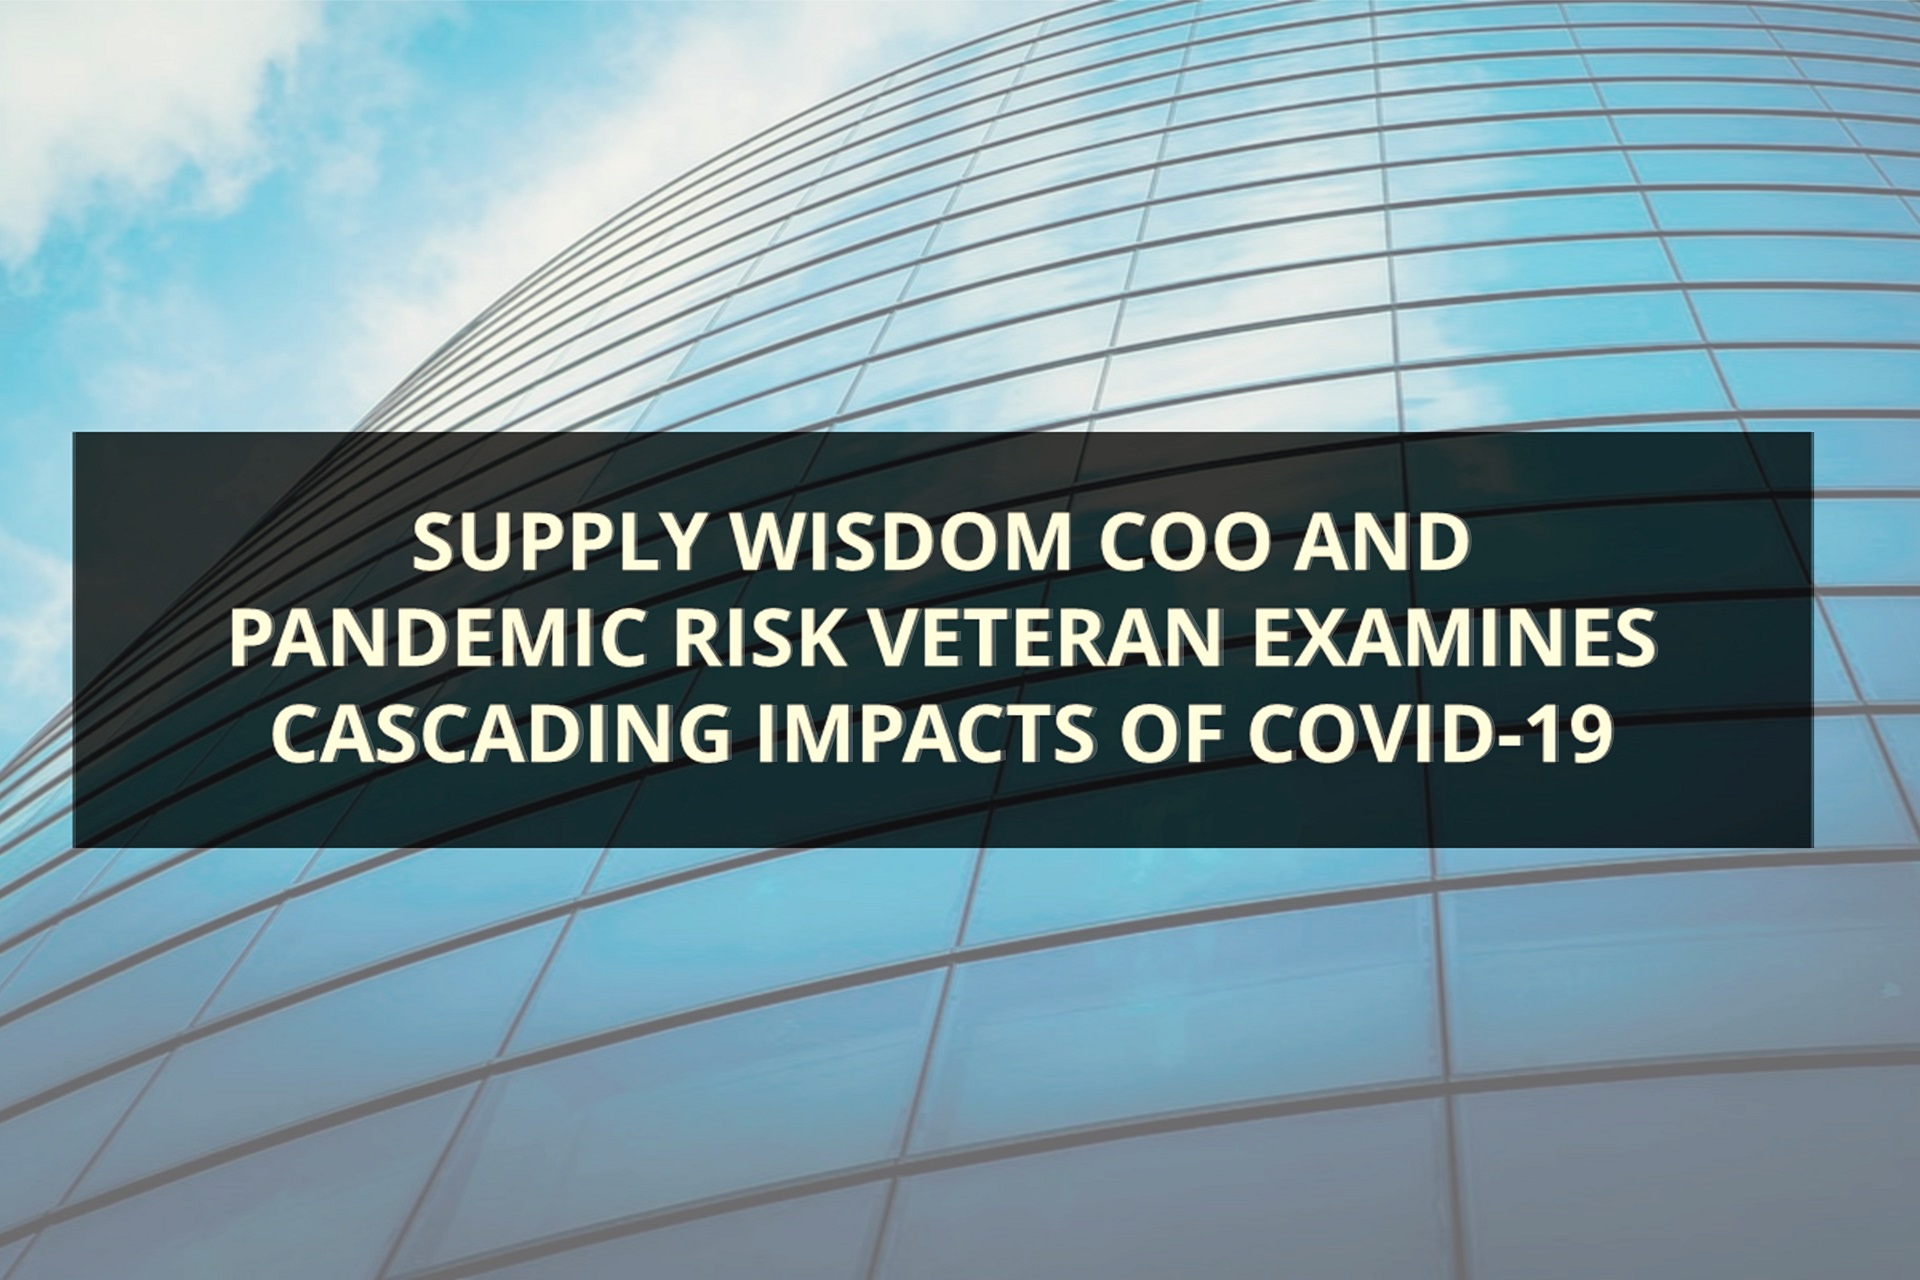 Victor Meyer on the cascading impact of Covid19 - Interview with Insurance Business UK